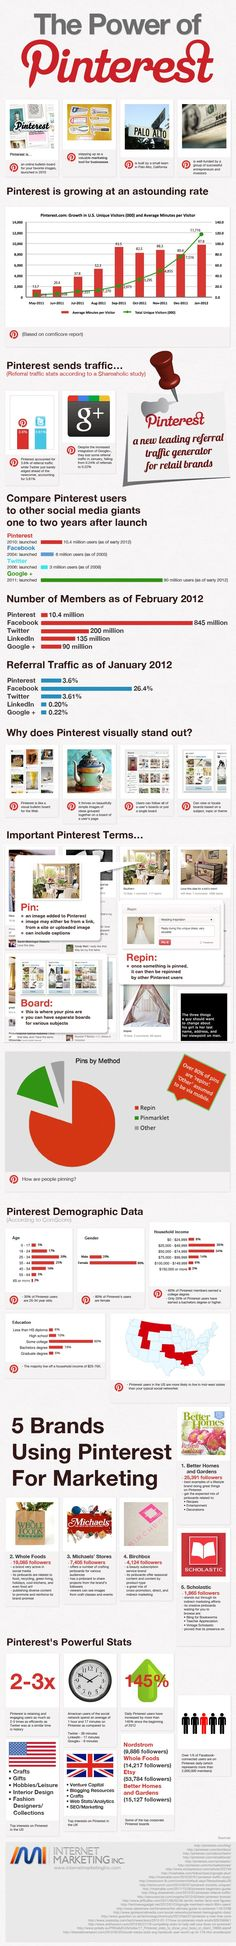 Infographics and #'s behind Pinterest's astounding growth-equaling Twitter in referral traffic